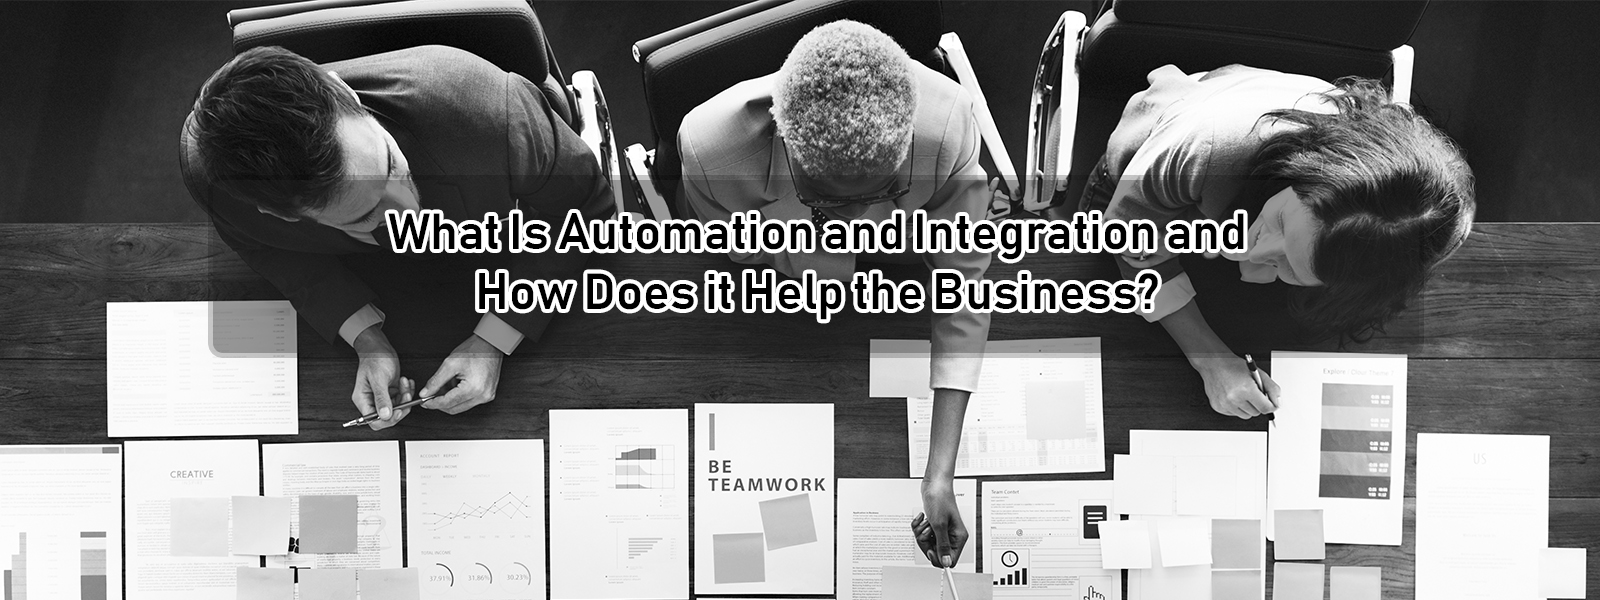 what is automation and integration and how does it help the business?